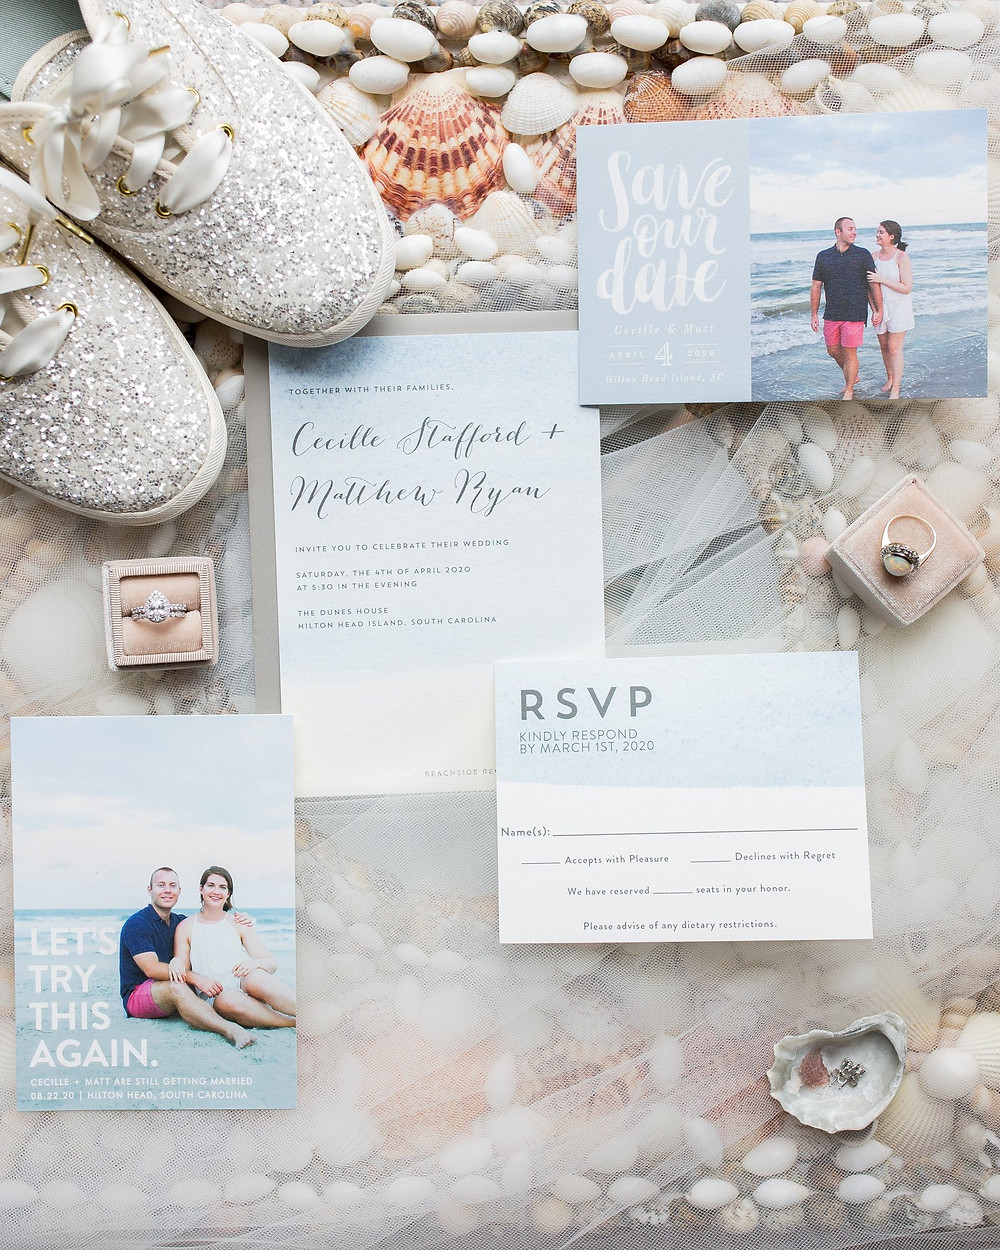 wedding details including invites, save the dates, rings, and bride shoes on seashells